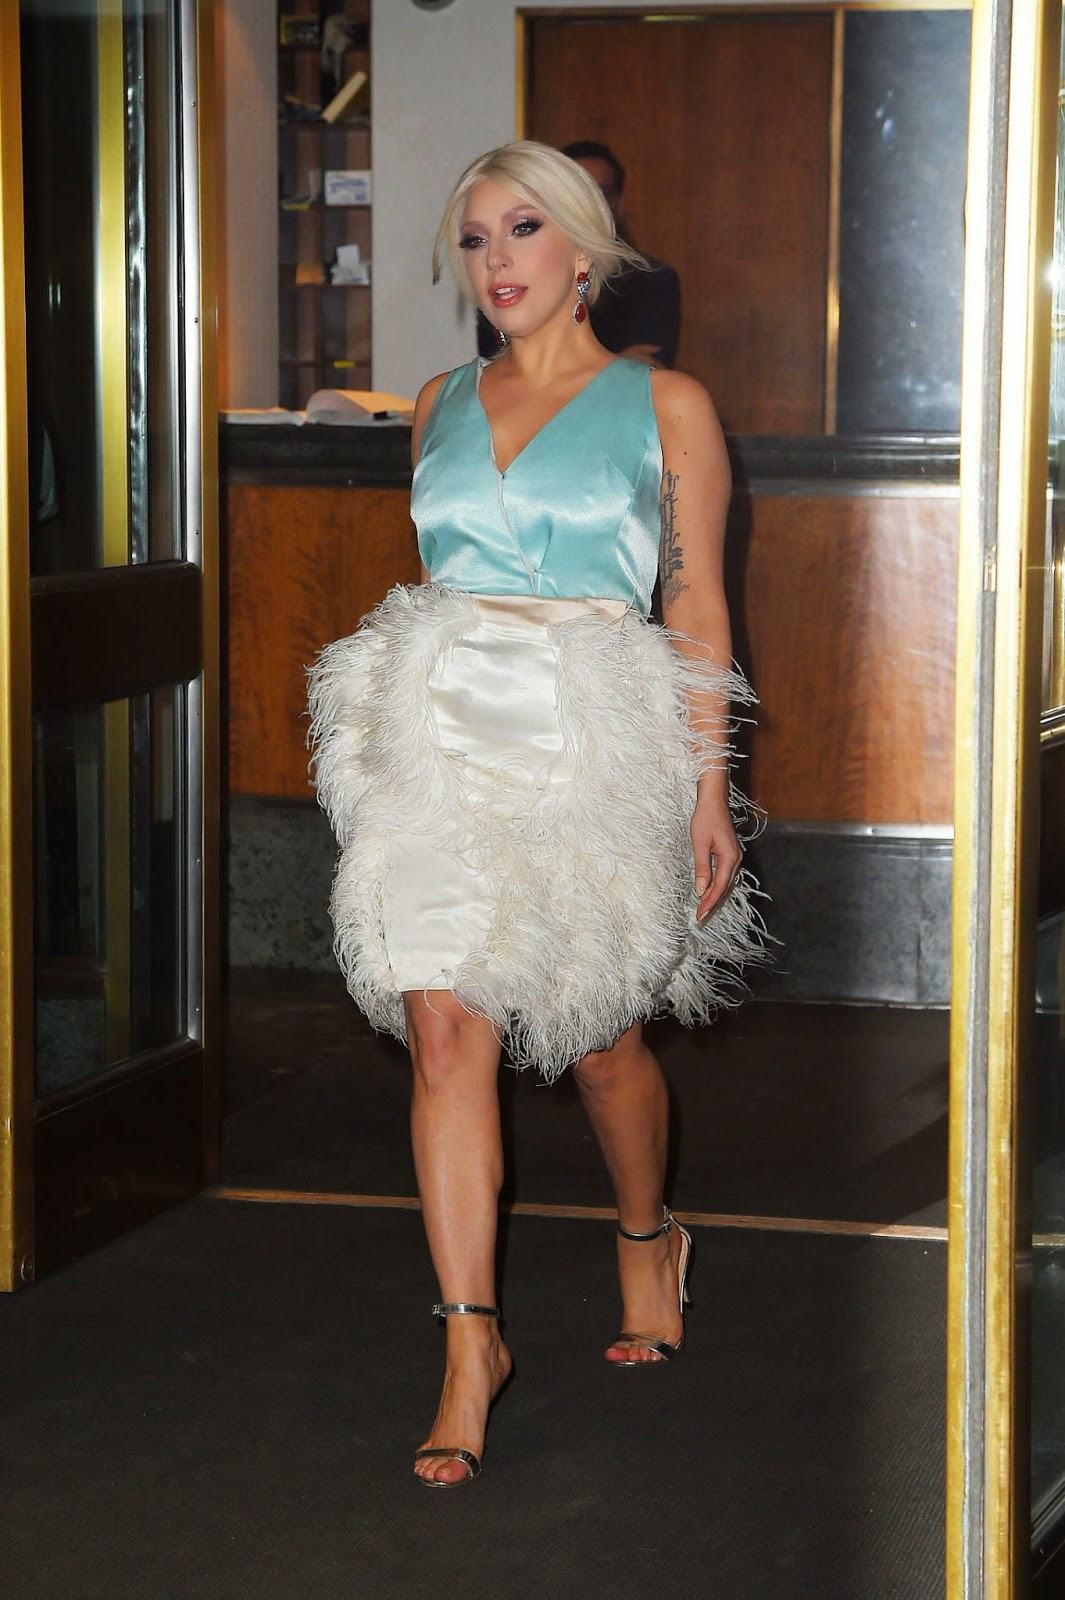 Lady Gaga spotted in a braless satin top and a fur fringed skirt in New York City